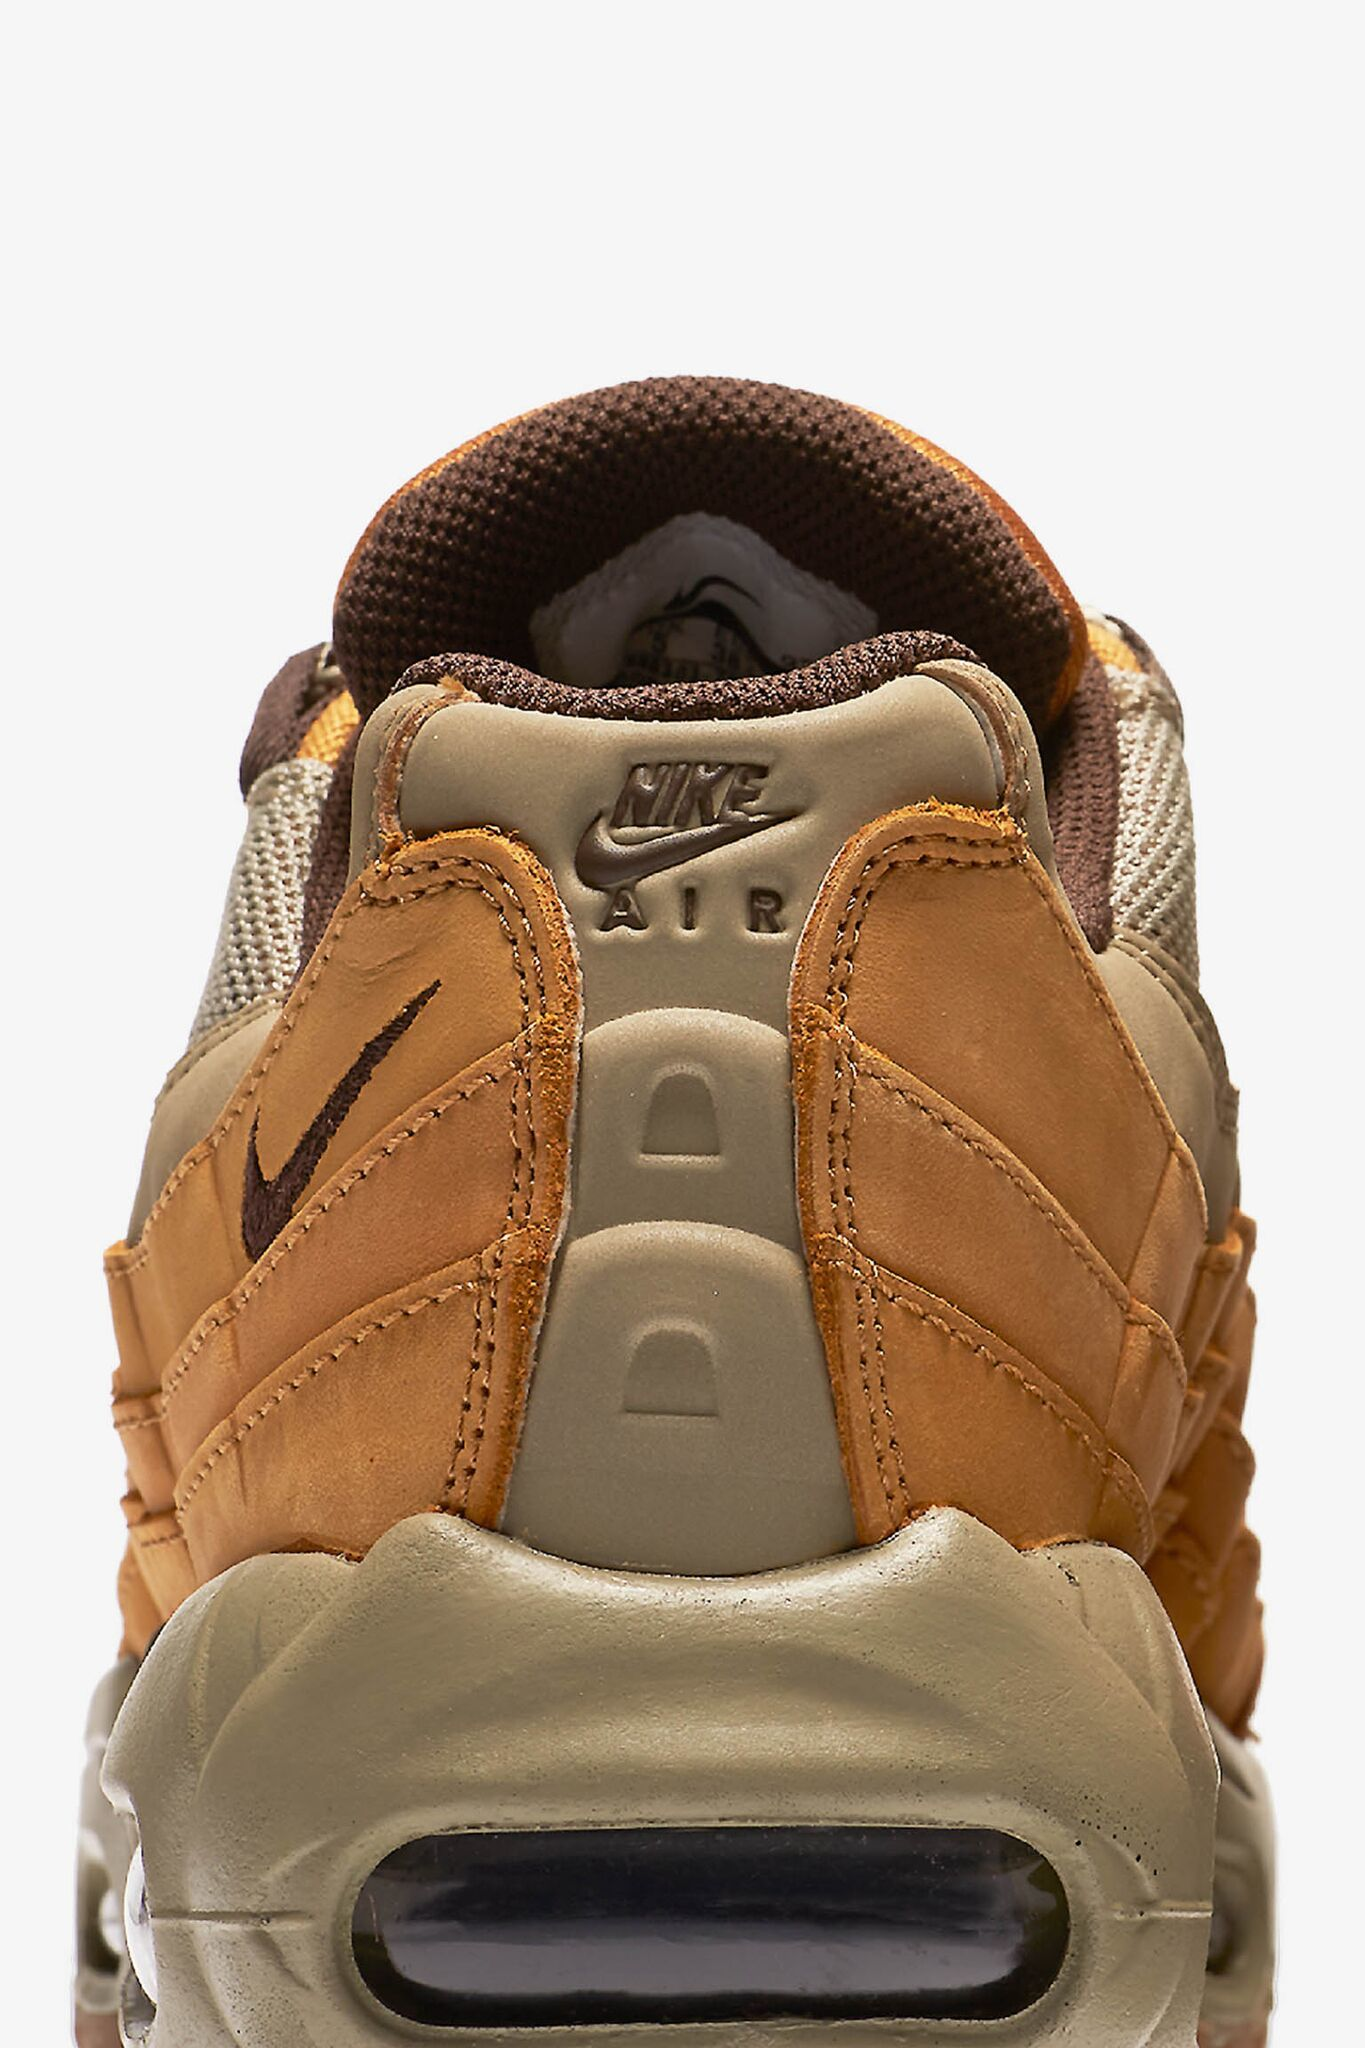 Women's Nike Air Max 95 Winter 'Bronze & Bamboo'. Release Date